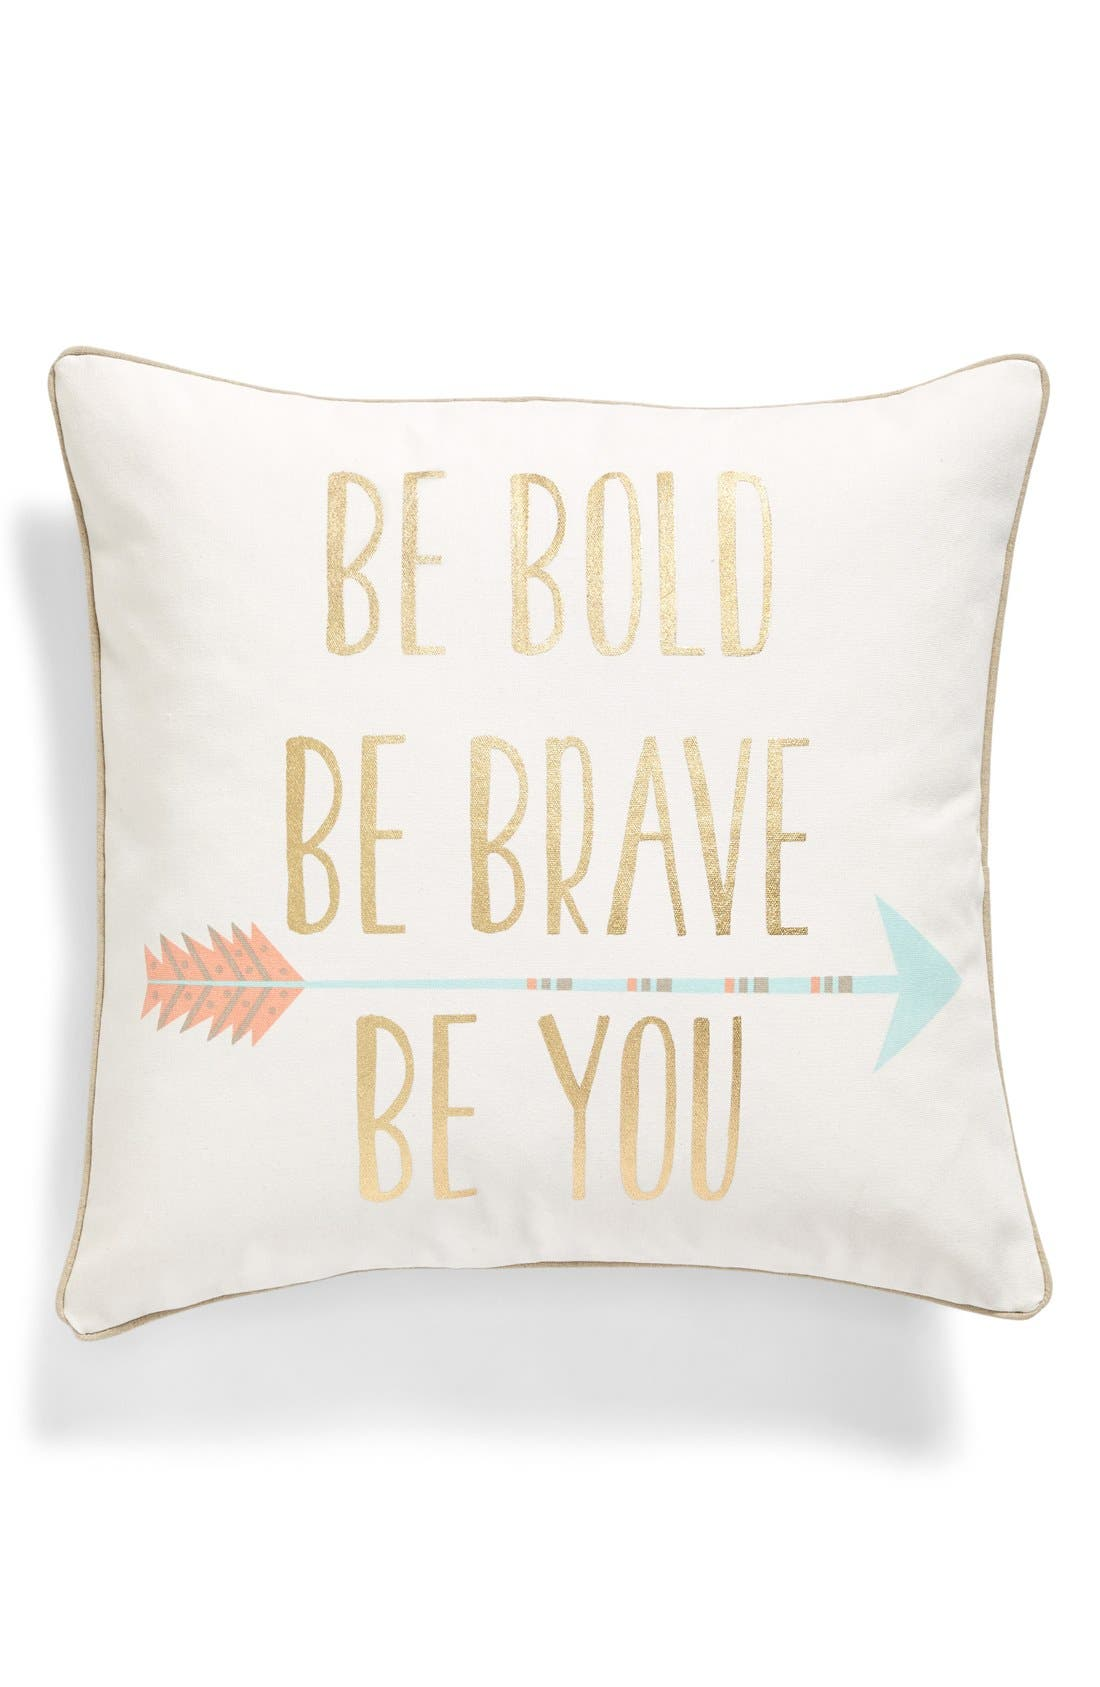 Alternate Image 1 Selected - Levtex 'Be Bold, Be Brave, Be You' Pillow